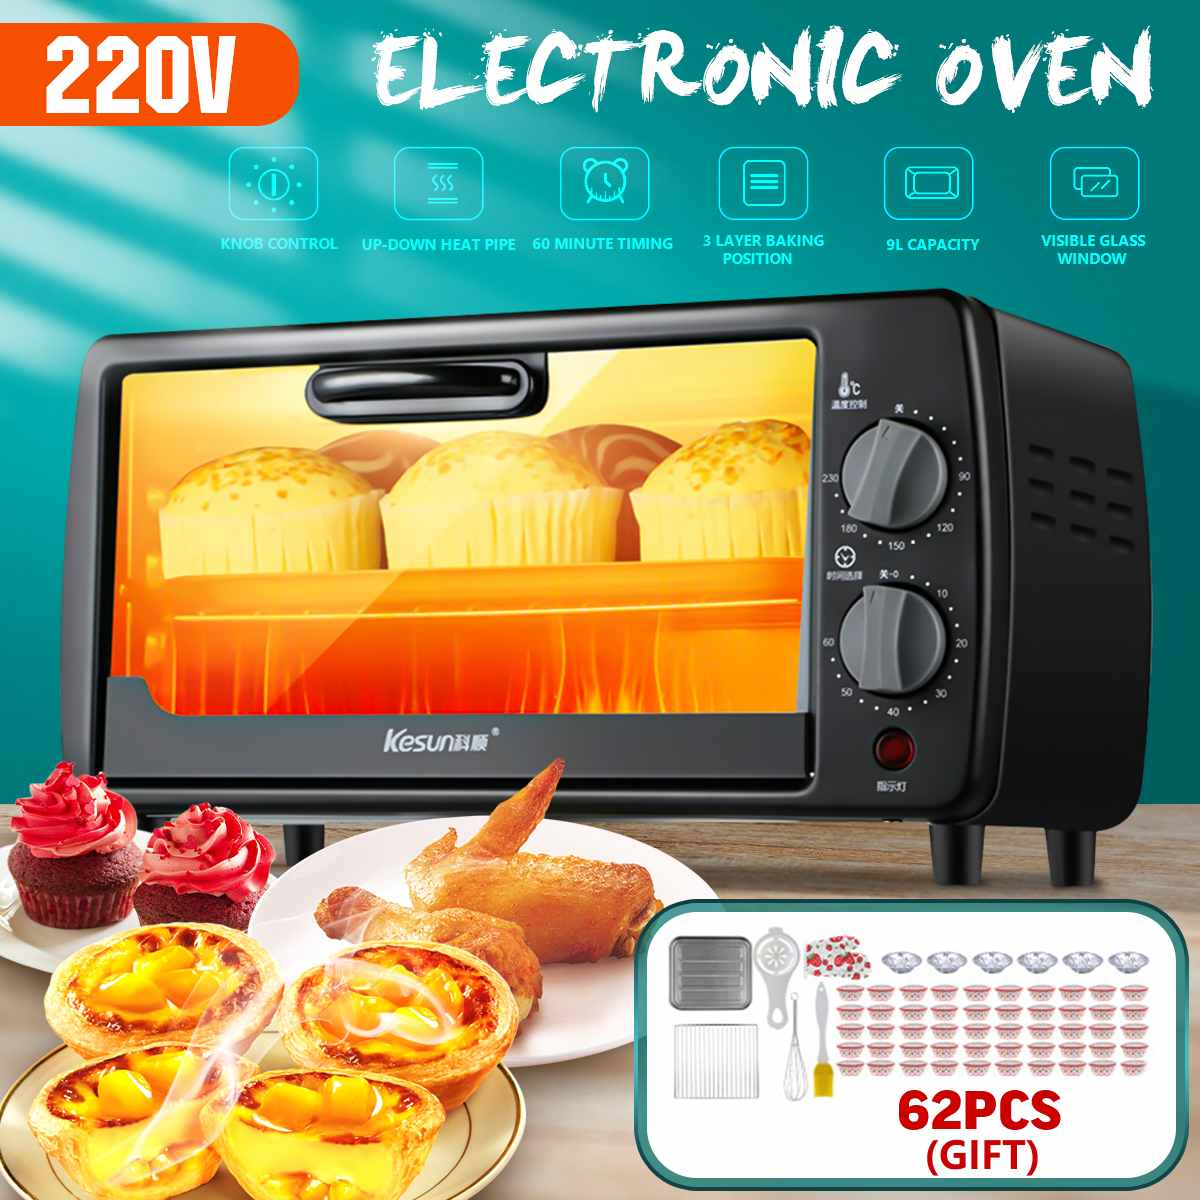 600W 9L Multifunctional Household Electric Oven Durable Mini Intelligent Timing Baking/Dried Fruit/Barbecue Bread Baking Oven